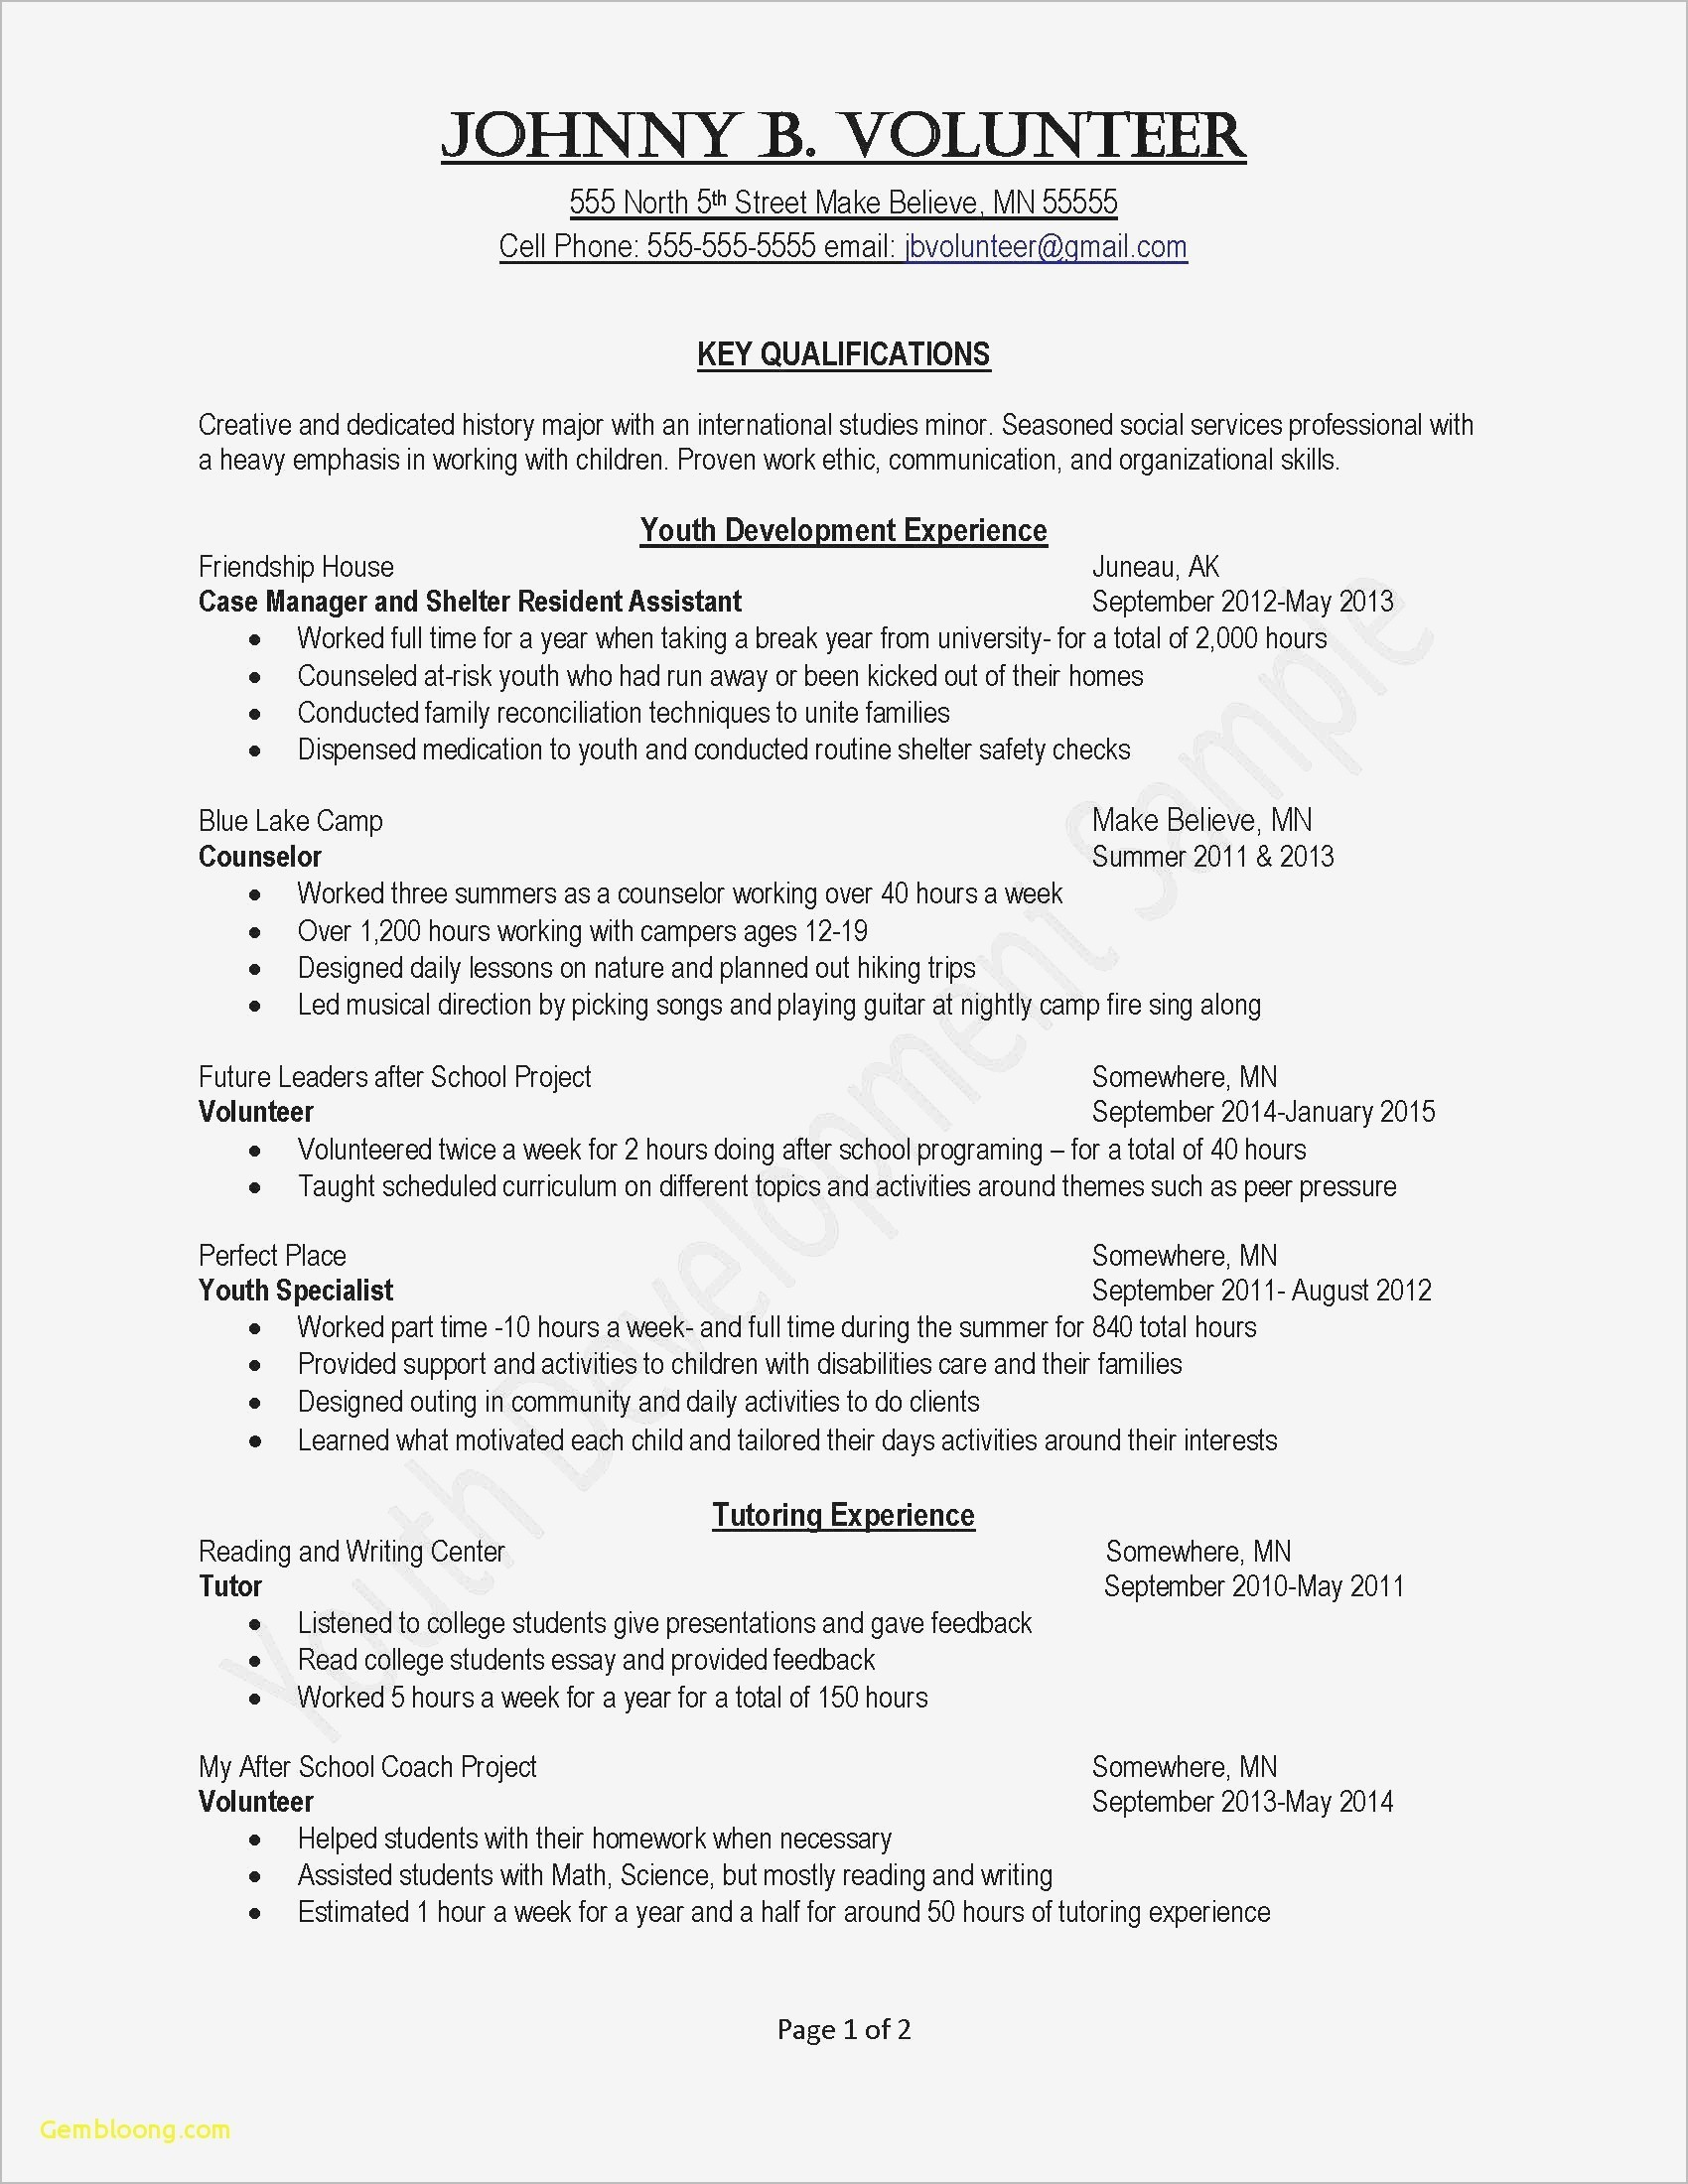 Intern Cover Letter Template - Fax Cover Sheet for Resume Inspirationa Fax Cover Letter Template